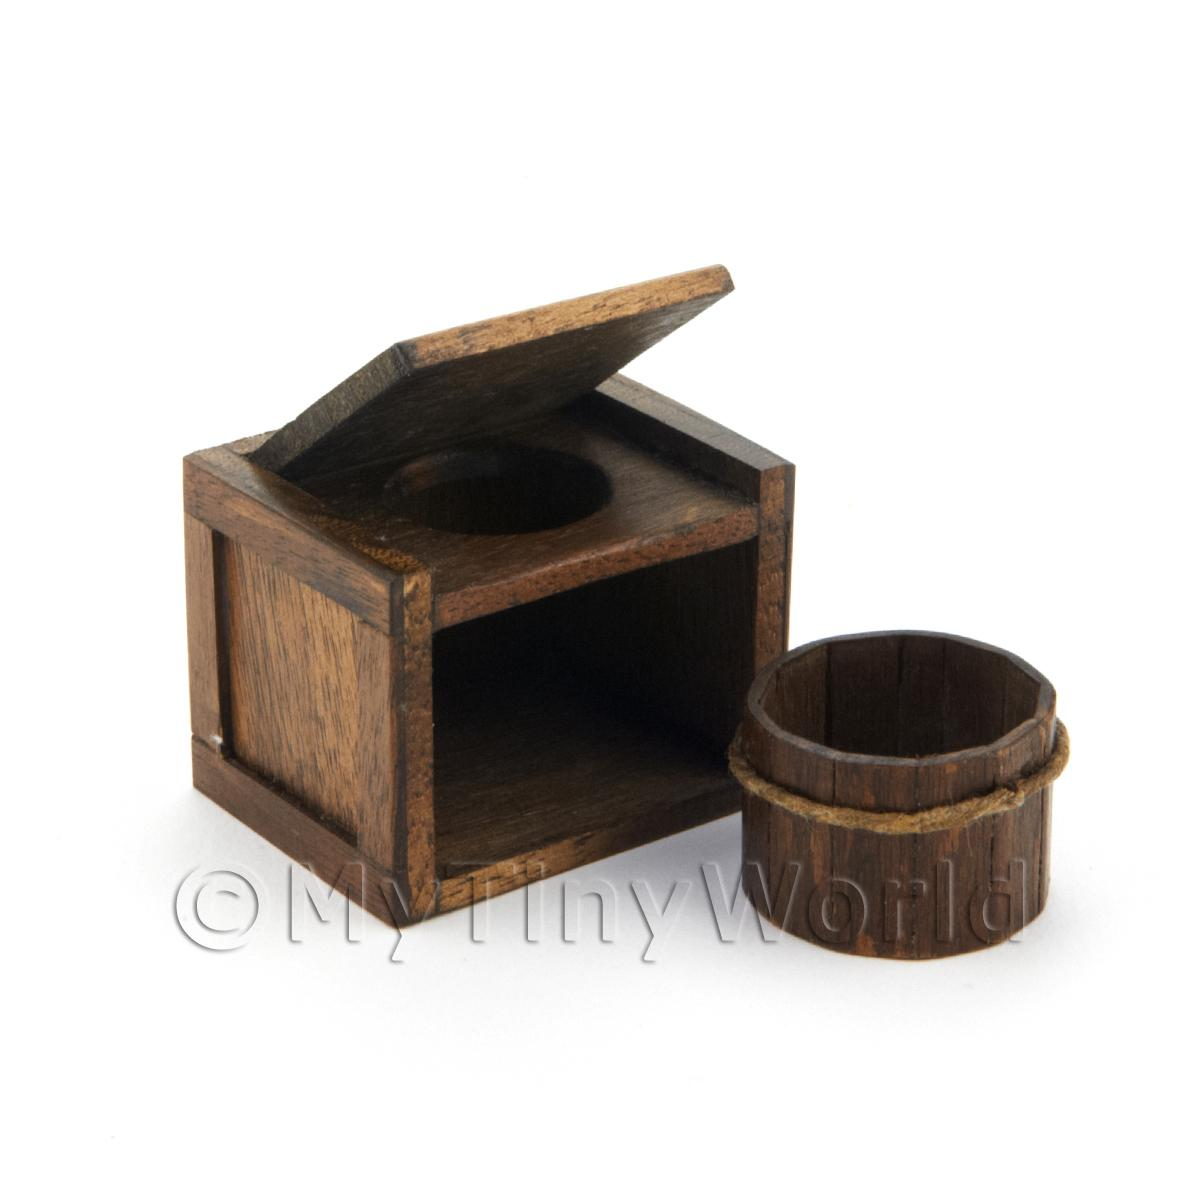 Dolls House Miniature Tudor Period Wooden Toilet